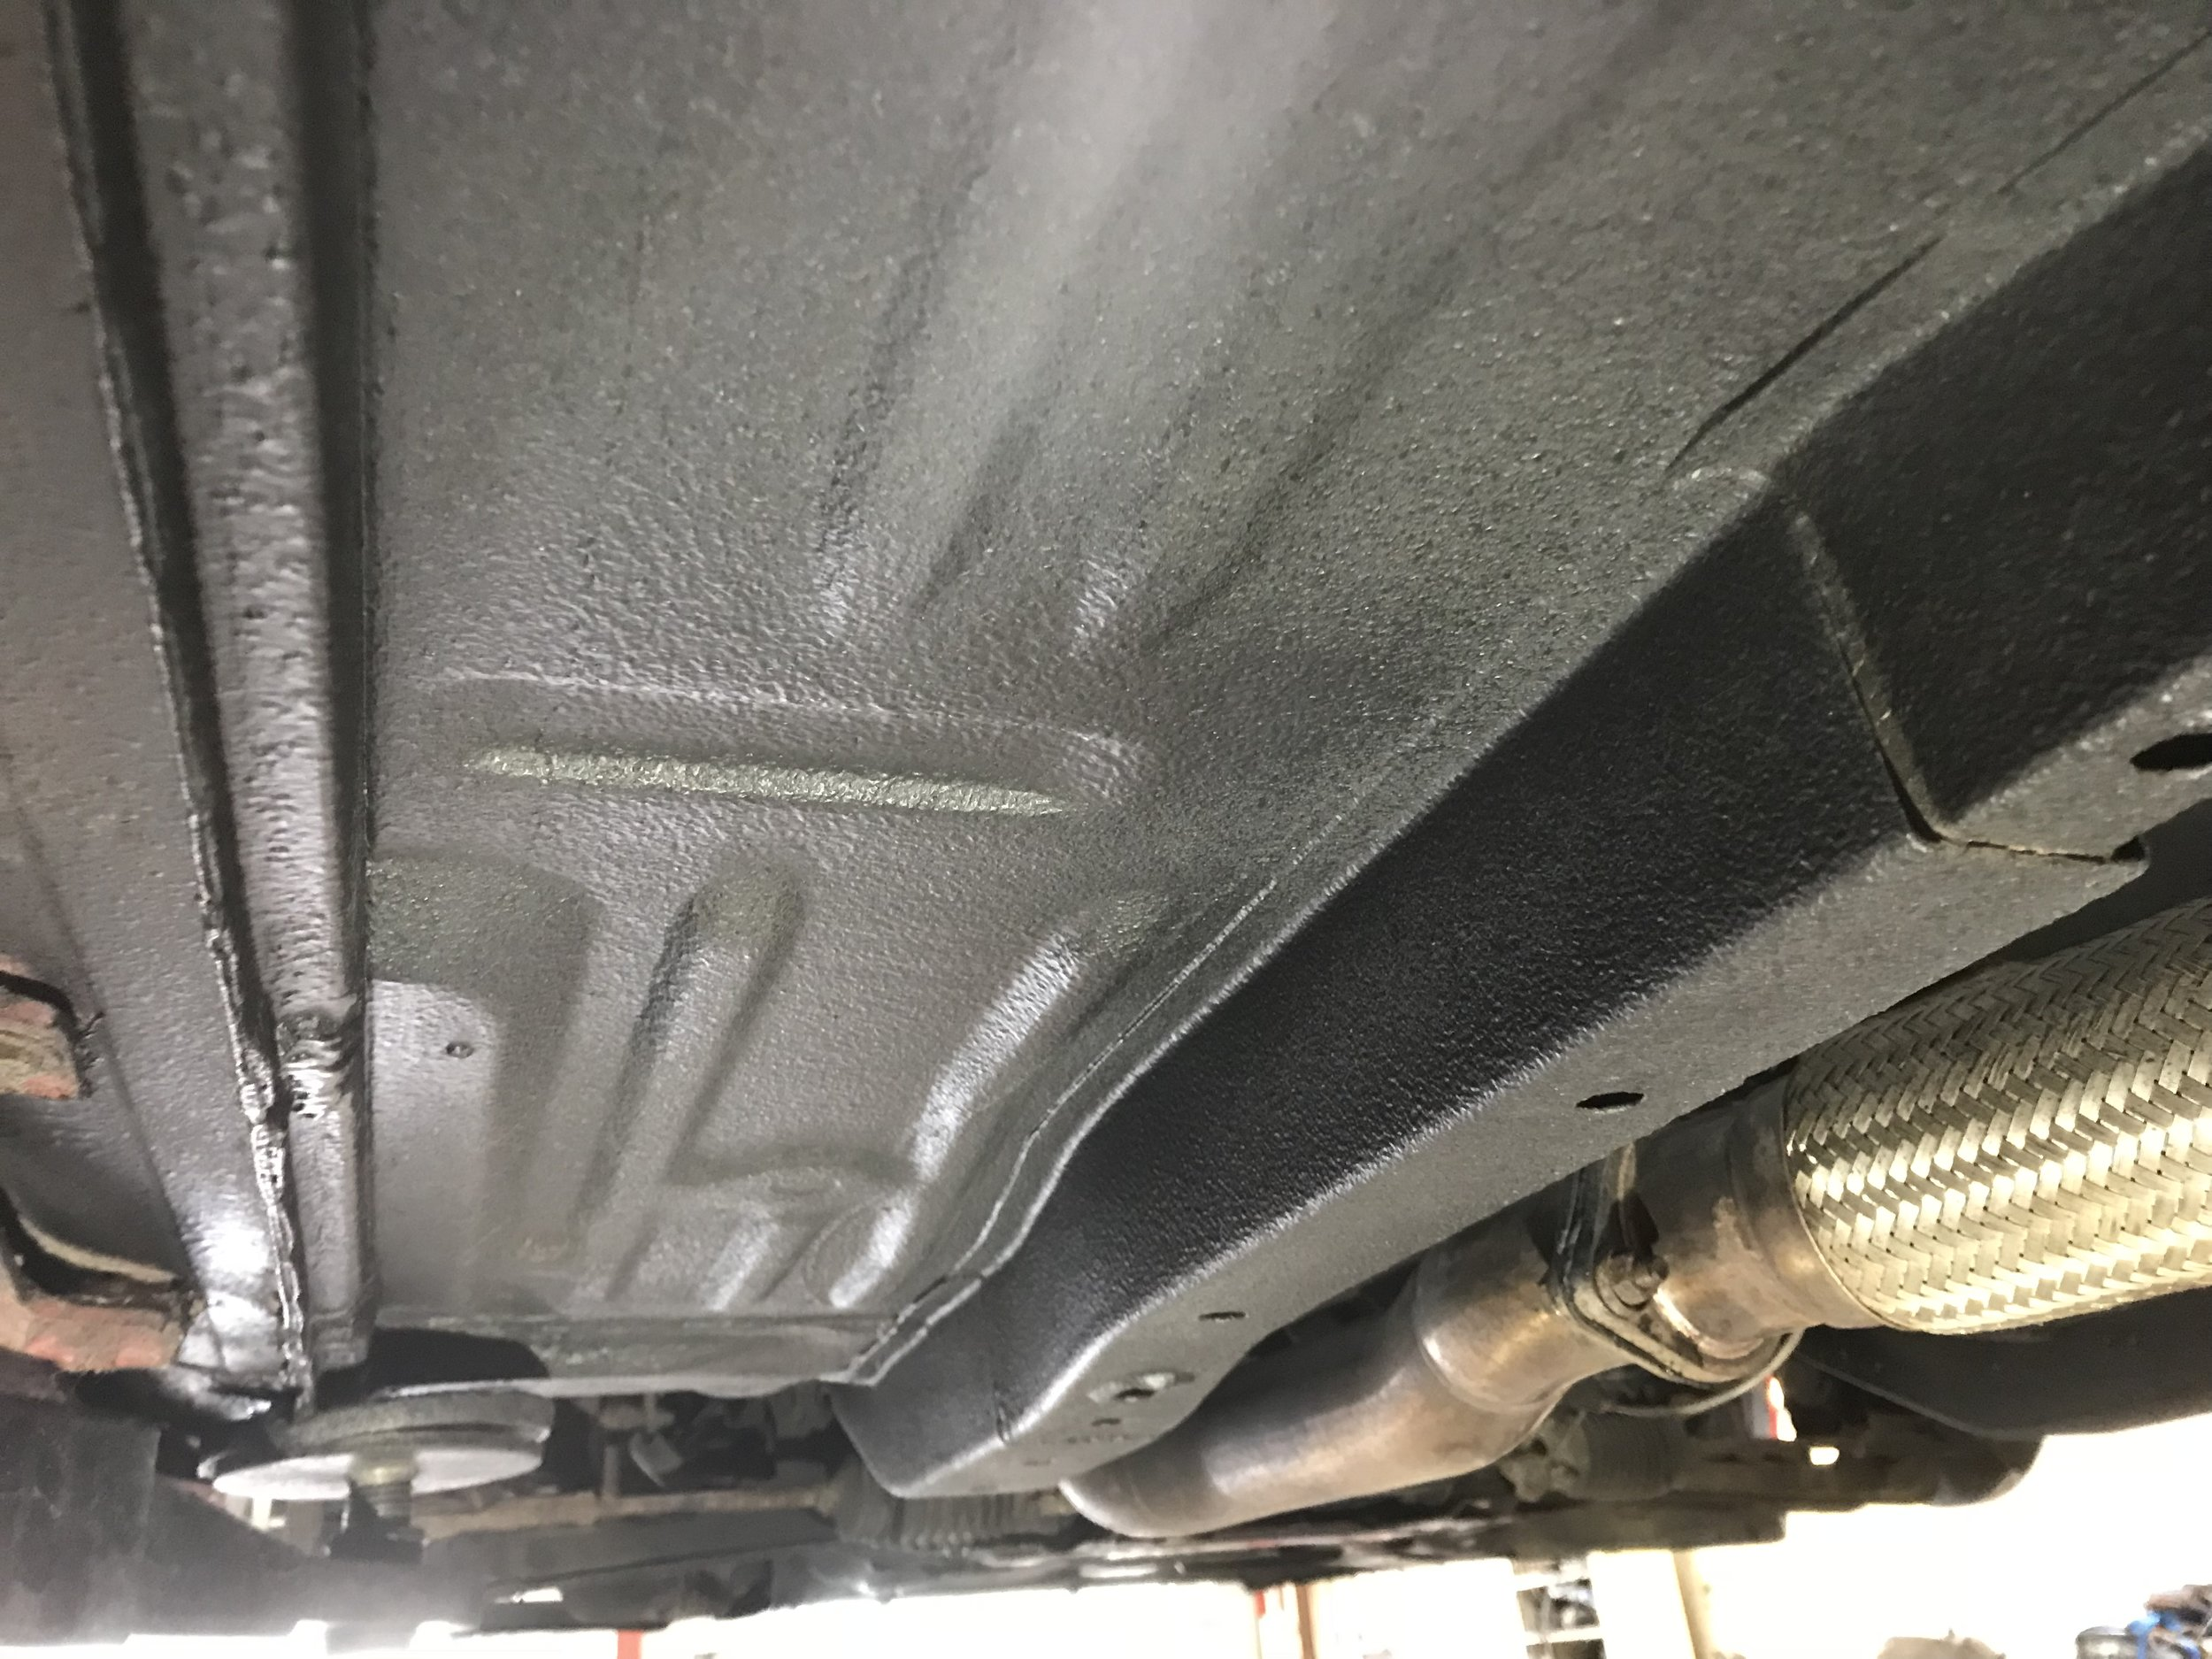 Pristine underbody with no repair welds